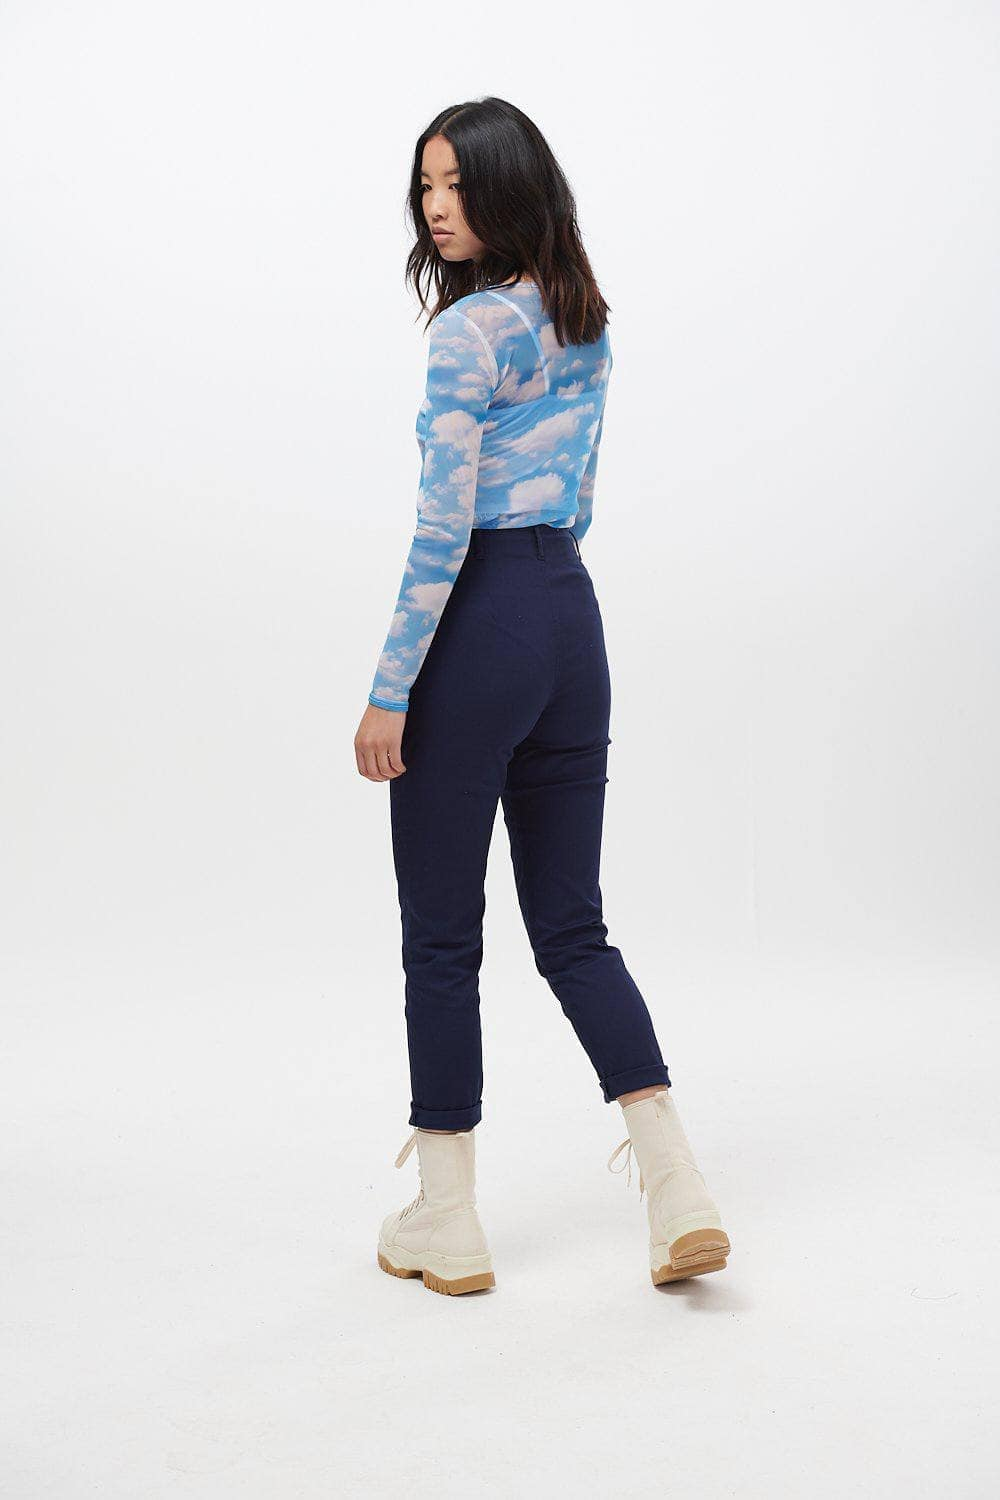 Lucy & Yak trousers Camden Trousers In Navy Blue - Improved Fit